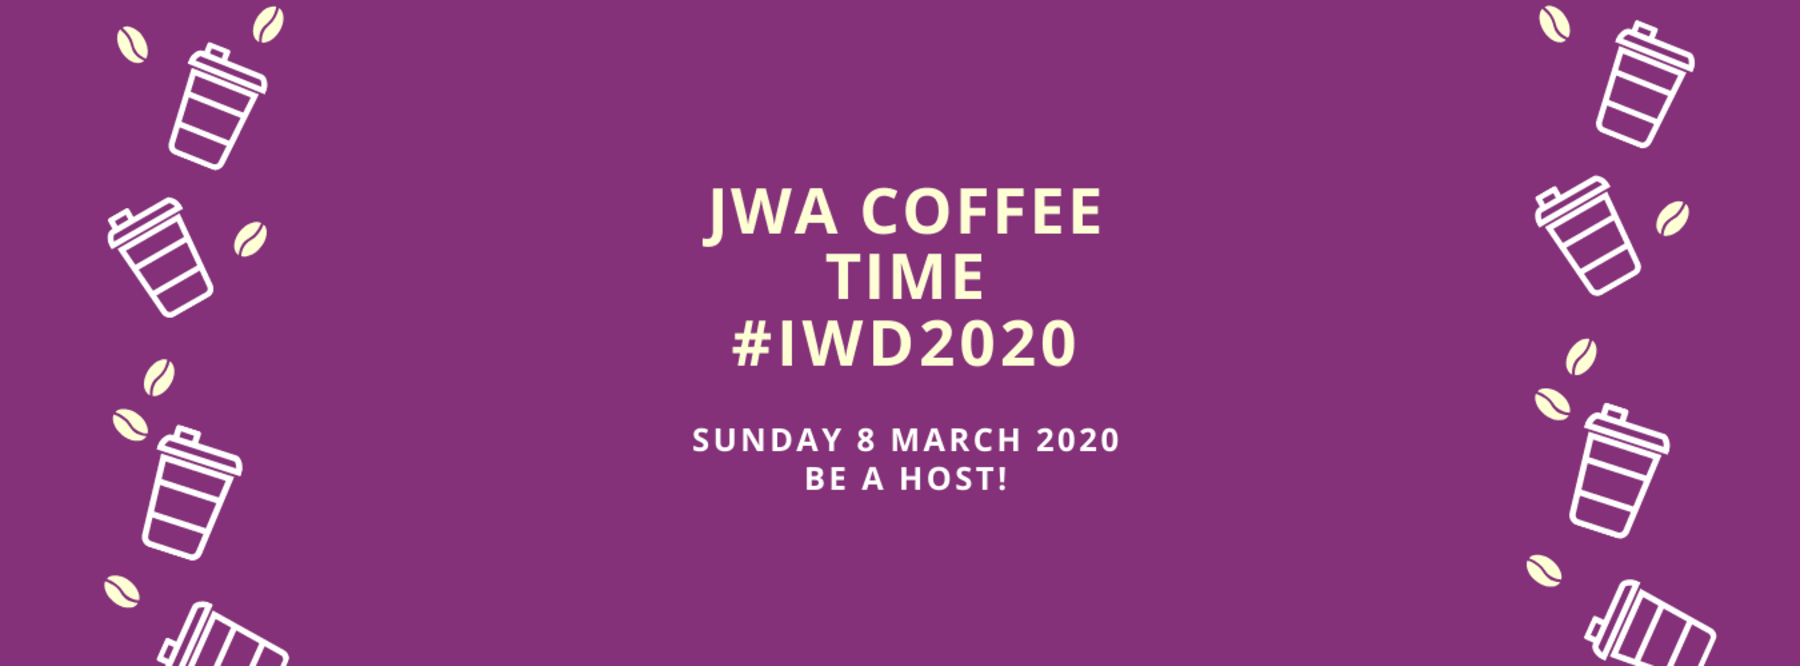 JWA Coffee Time for International Women's Day